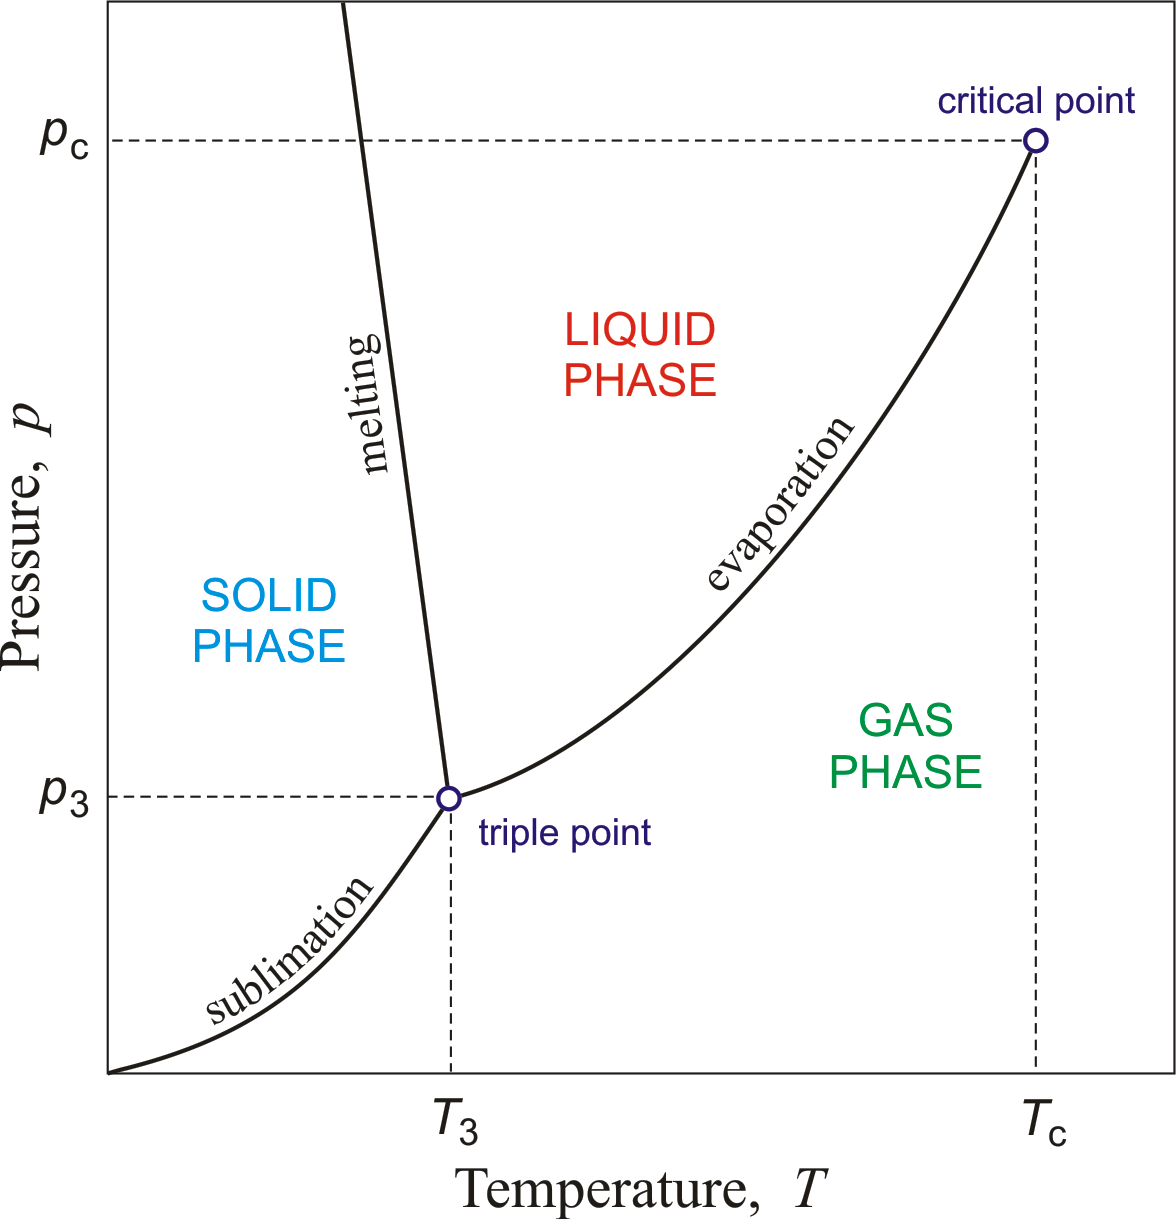 Phase diagram | Libros | Ciencia, Física y Avances tecnologicos on triple point, phase contrast, phase sequence, phase shift, phase space, crystal structure, phase rule, phase envelope, critical point, materials science, phase modulation, solid solution, chemical equilibrium, melting point, phase icon, phase transition,